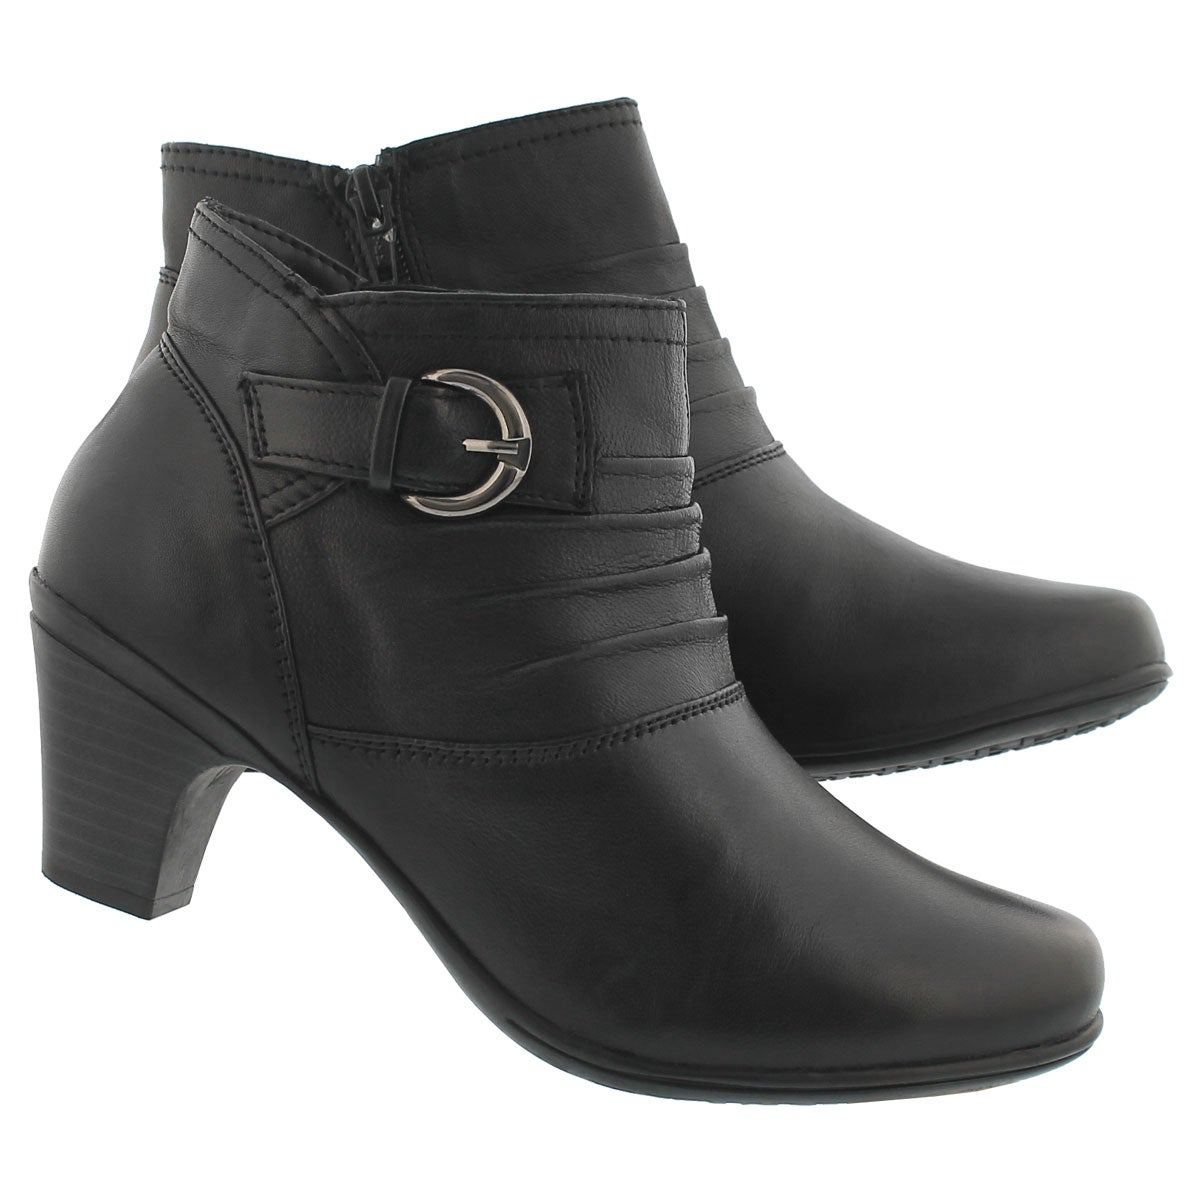 Lds Dharma black dress bootie-wide